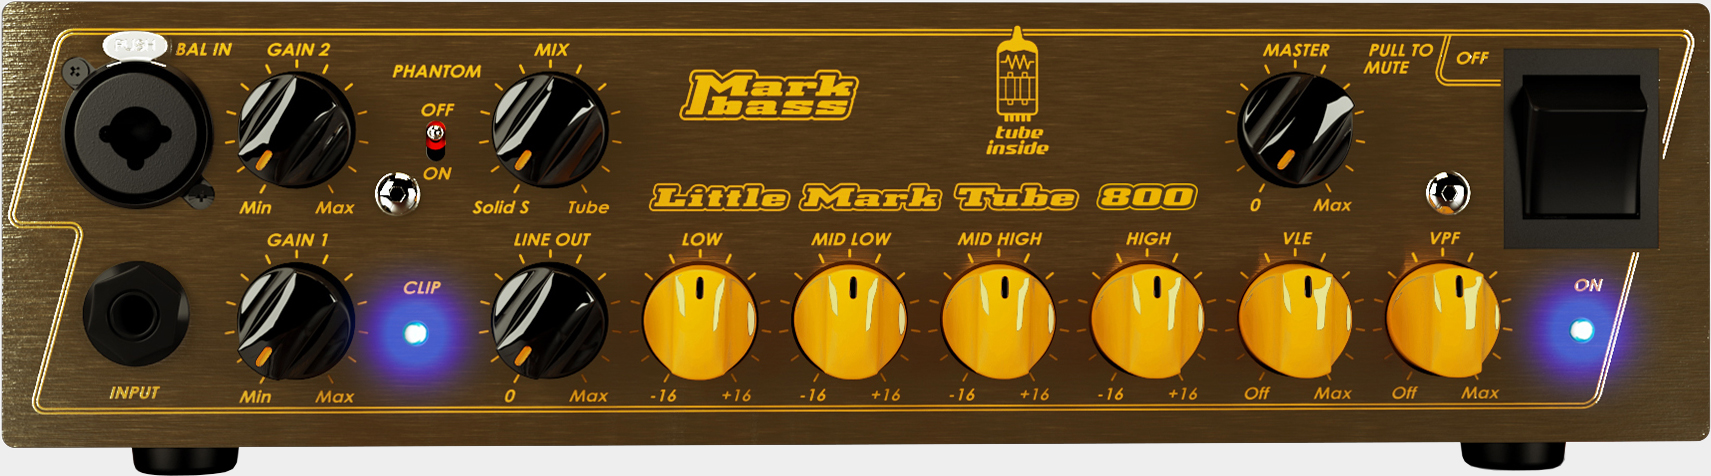 MARKBASS Little Mark Tube 800 Frontpanel